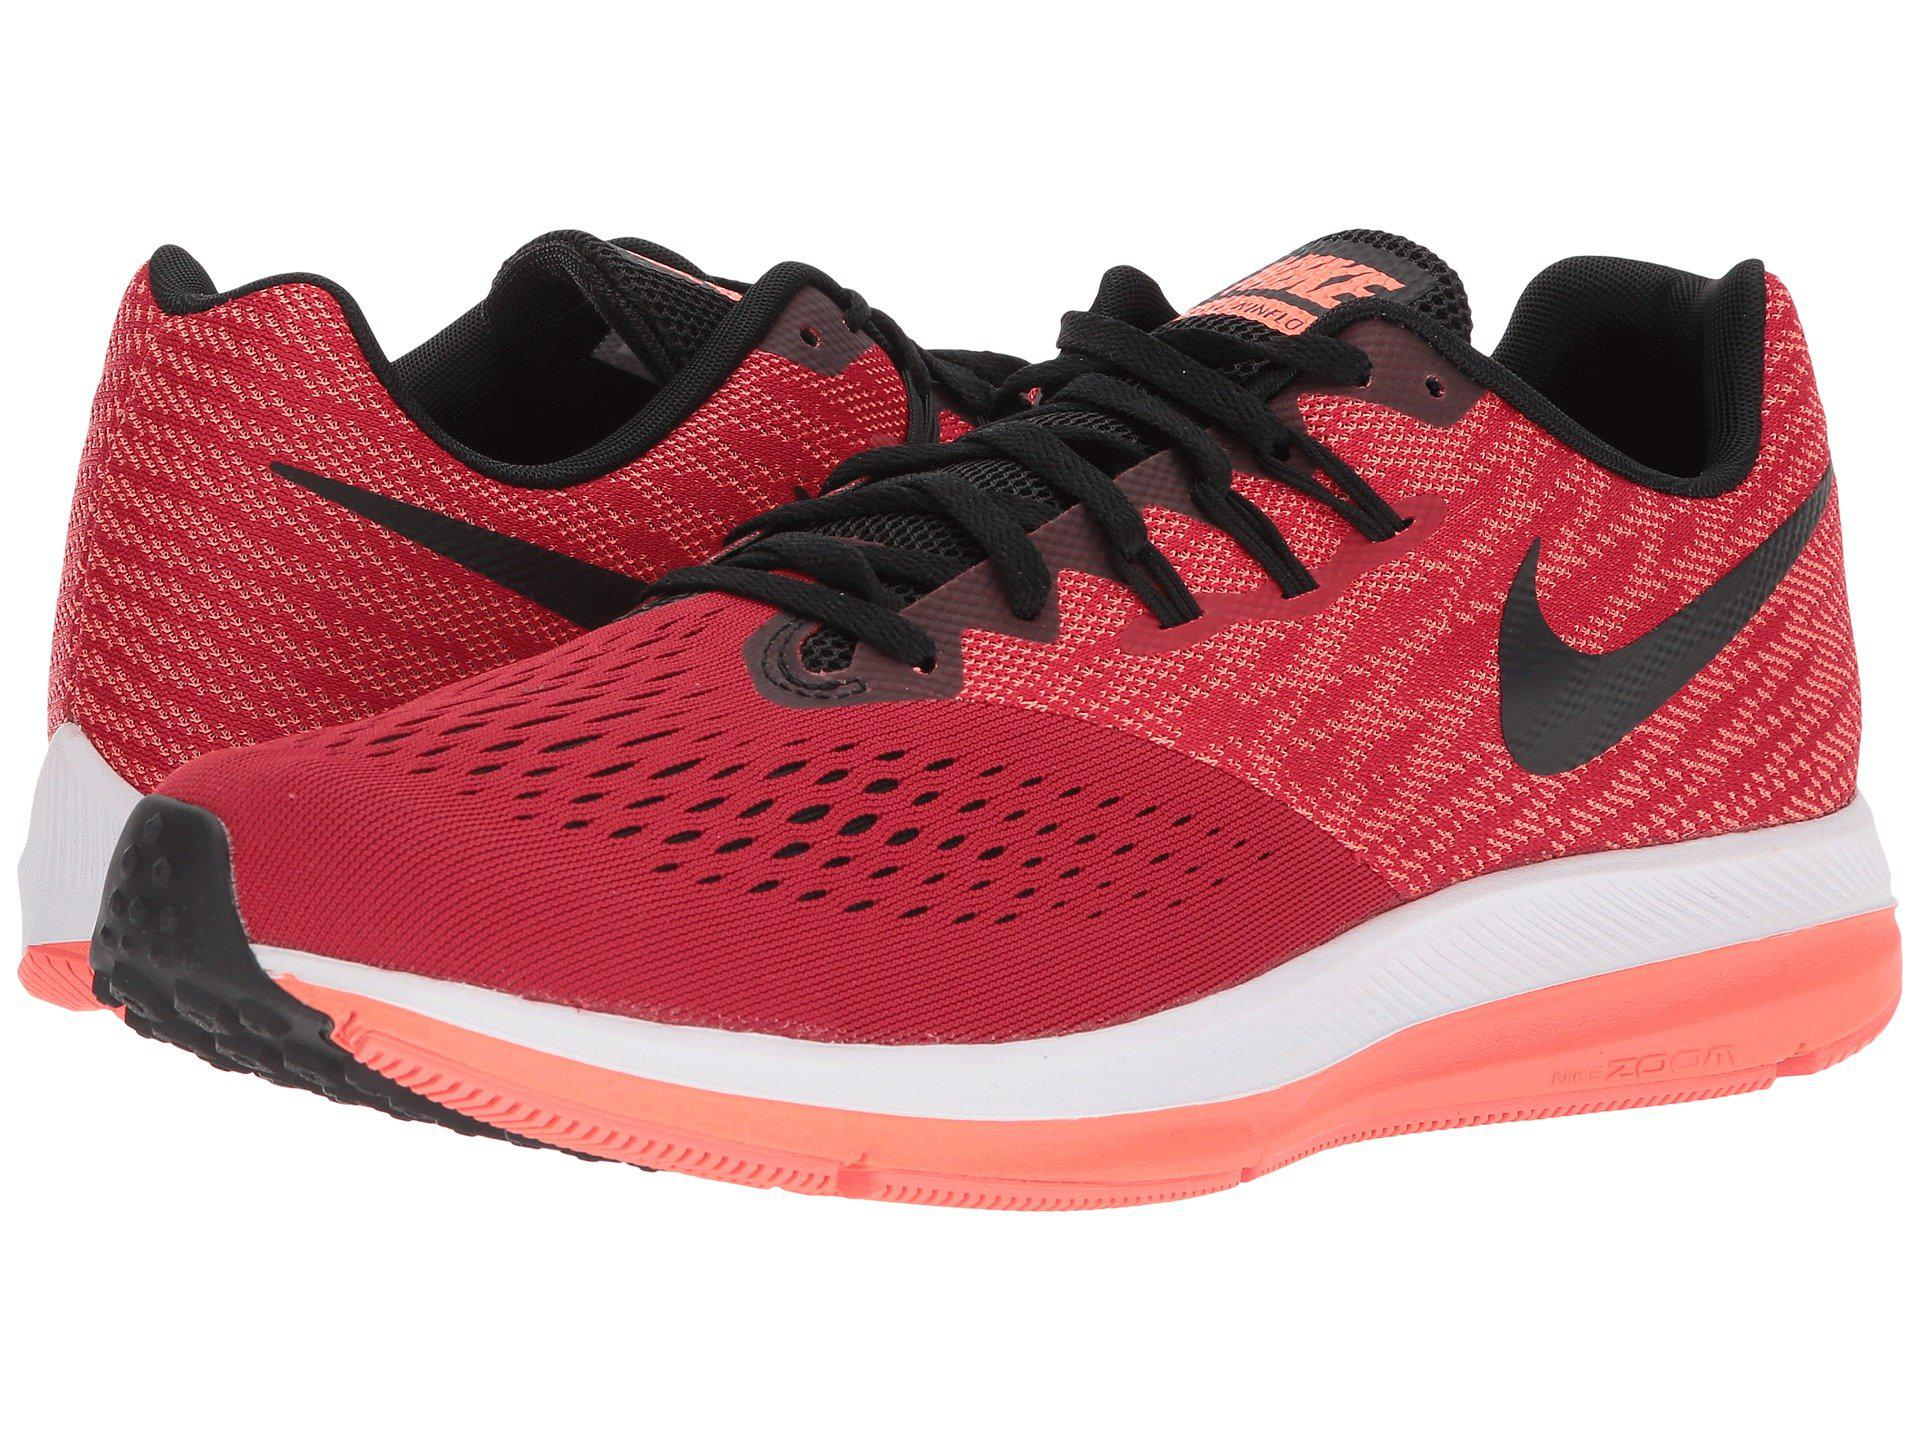 2e0951e914415 Lyst - Nike Zoom Winflo 4 Running Shoes in Red for Men